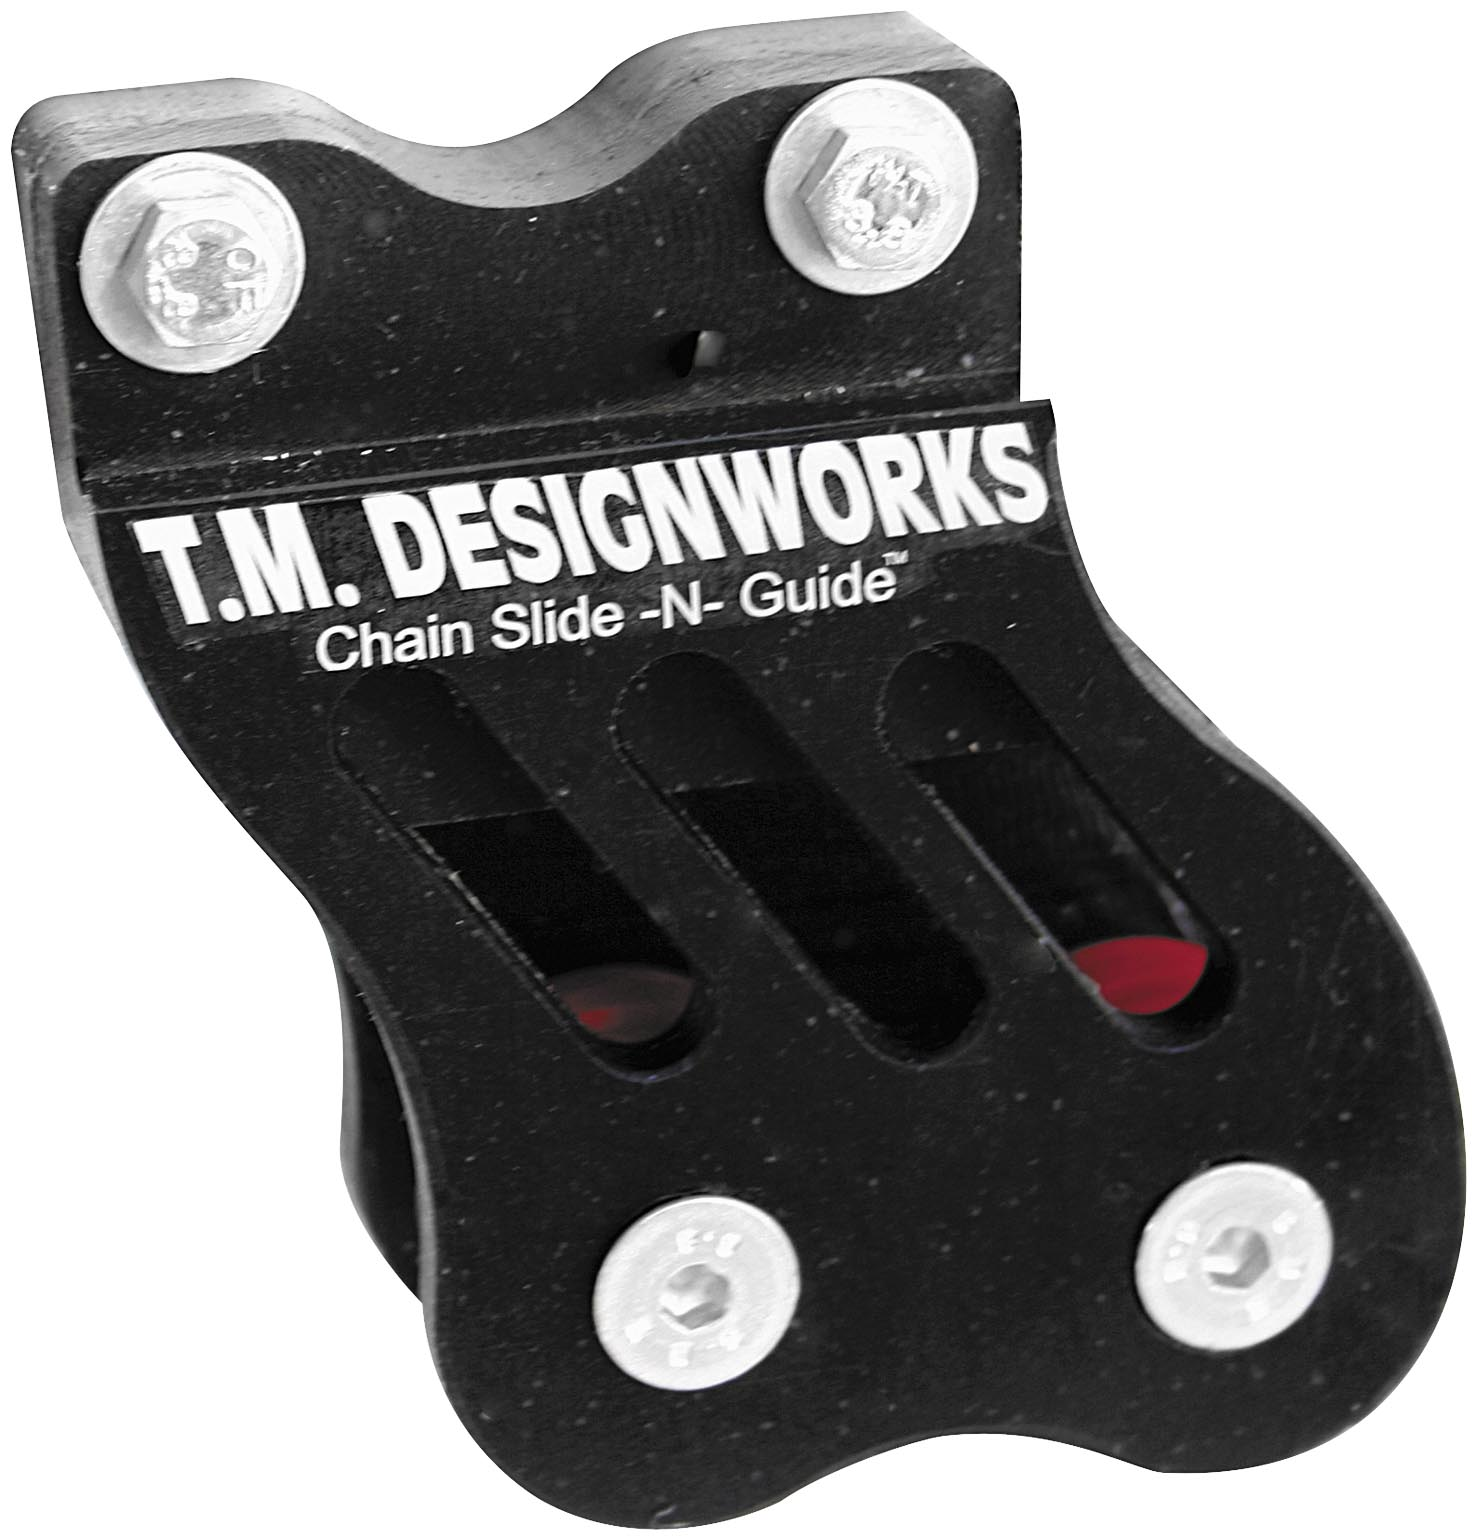 Designworks Rear Chain Guide and Single Powerlip Roller RCG-005-BU T.M